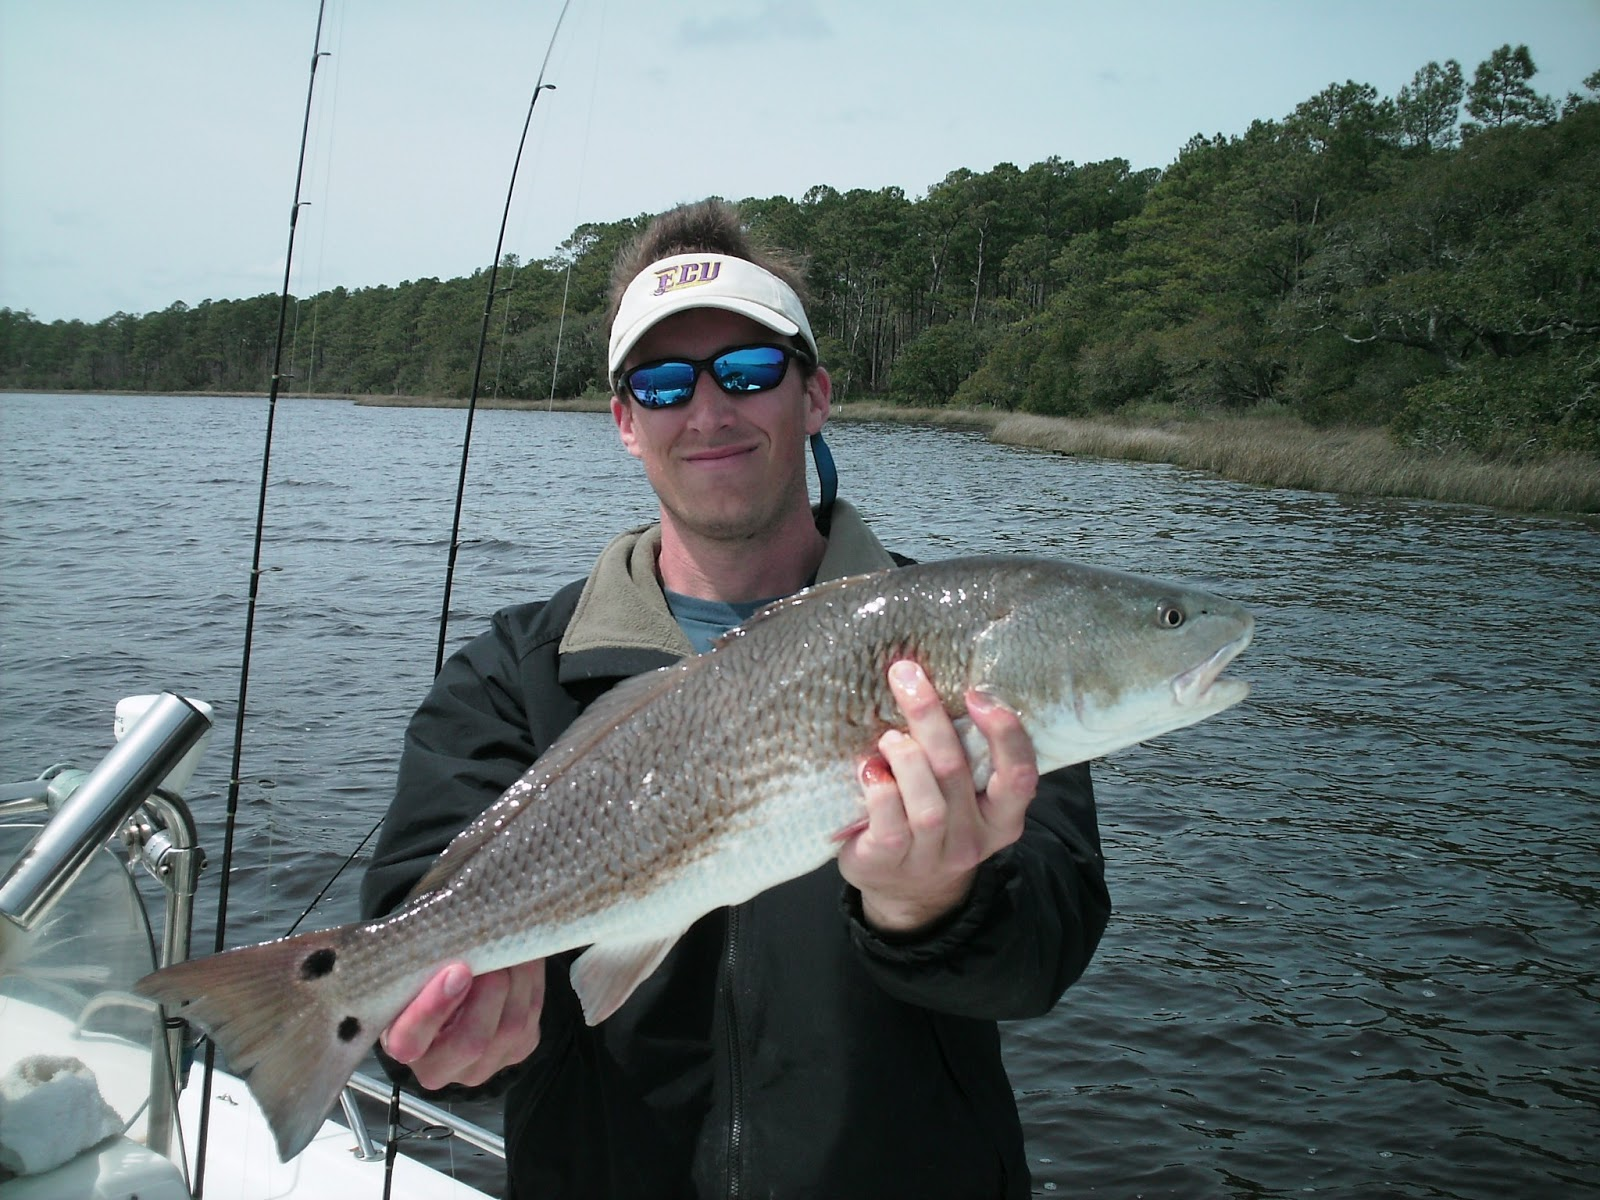 morehead city guide service and charter boats ForFishing Morehead City Nc